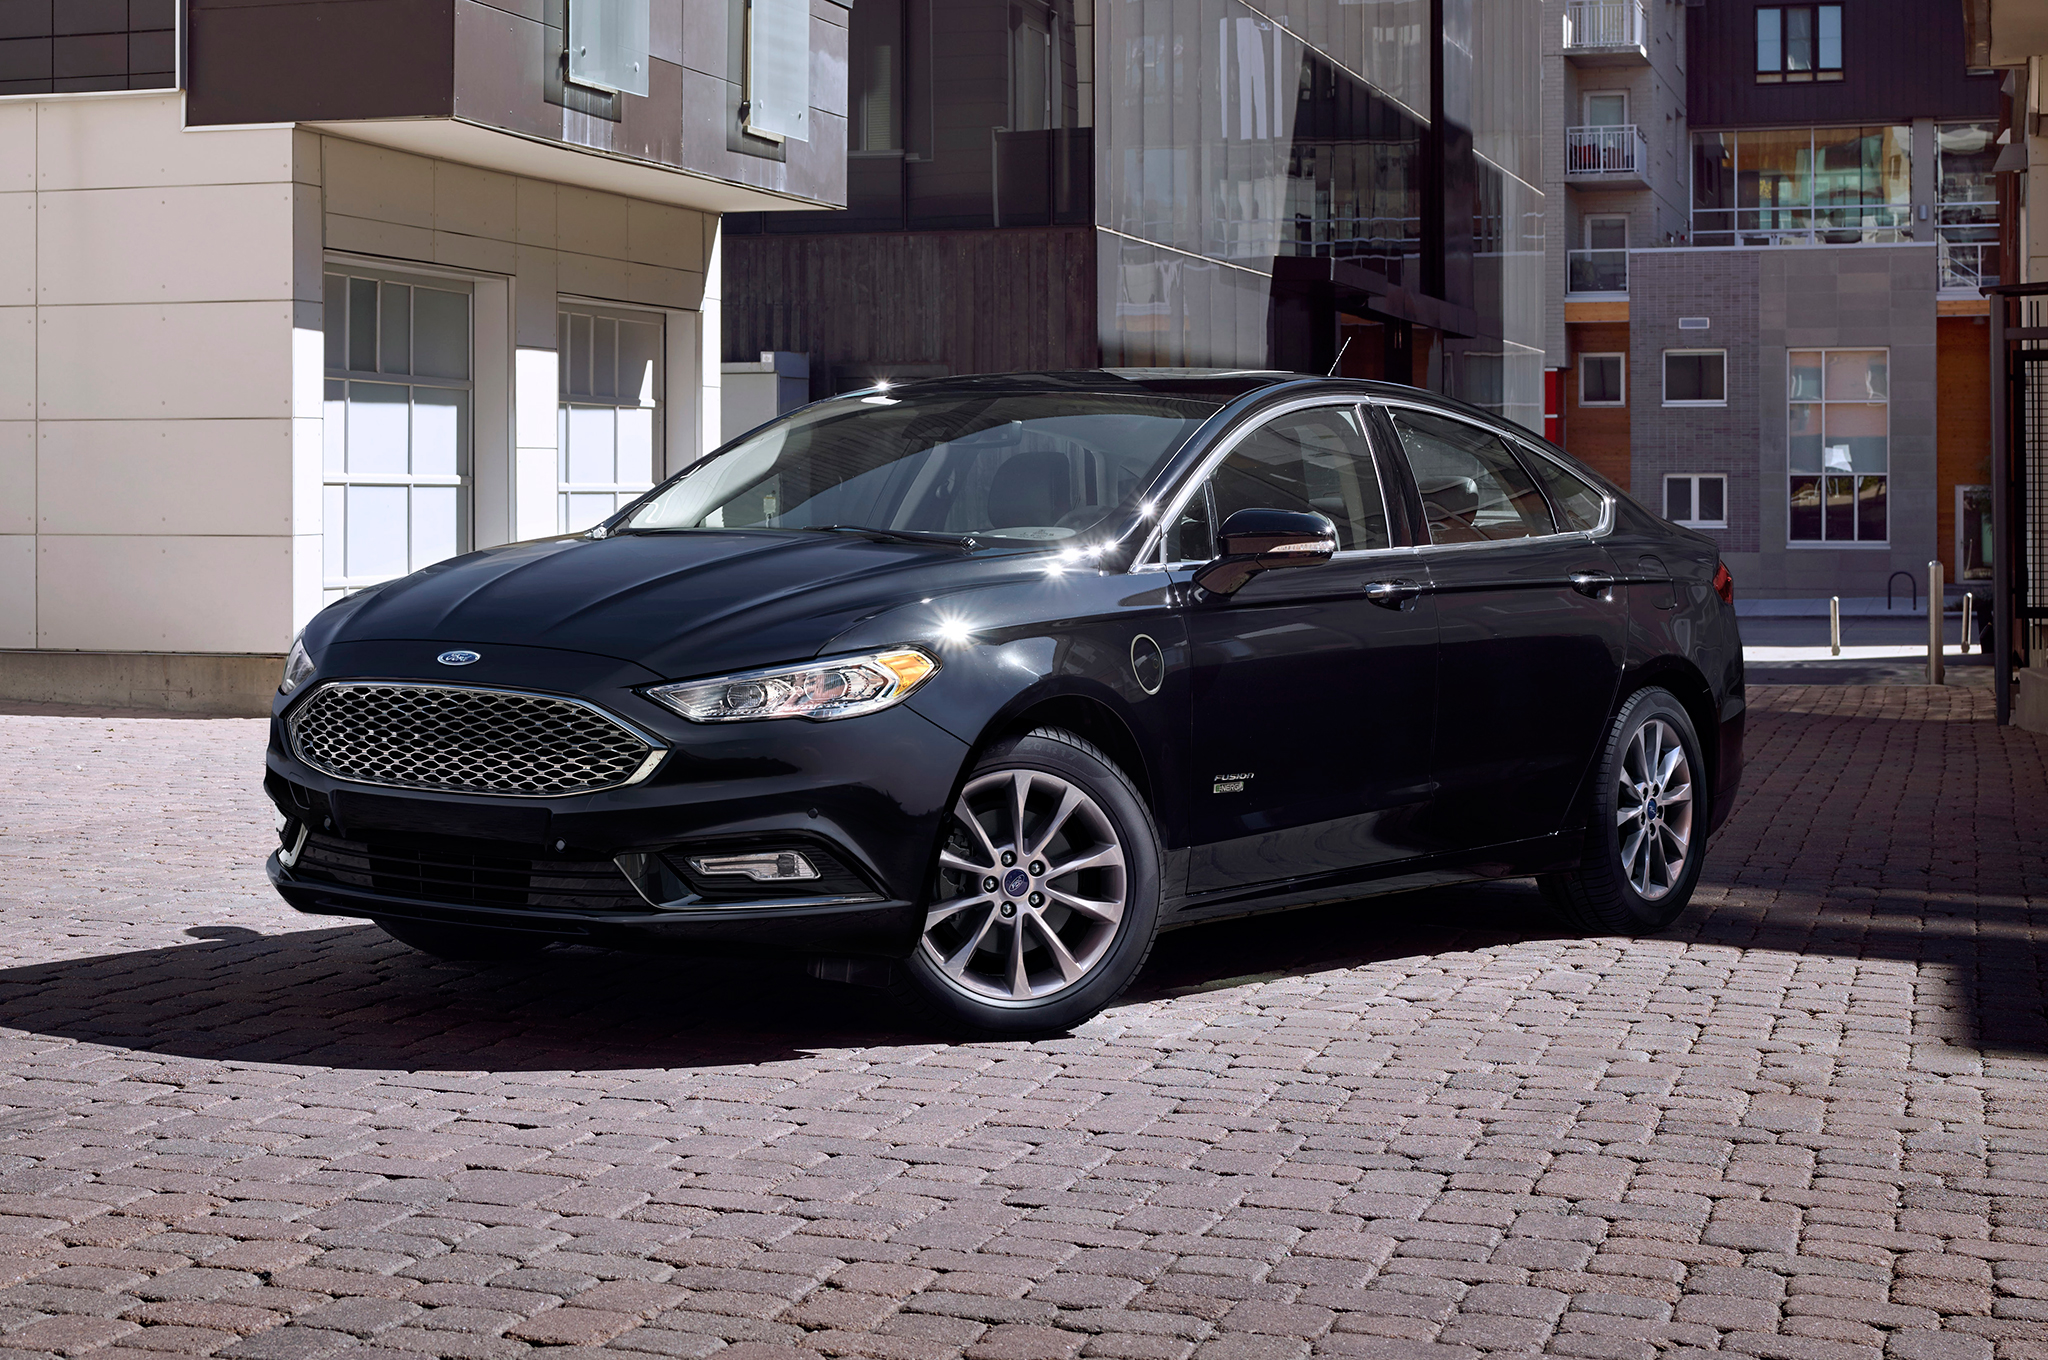 reviews ford news energi msrp fusion with ratings platinum amazing